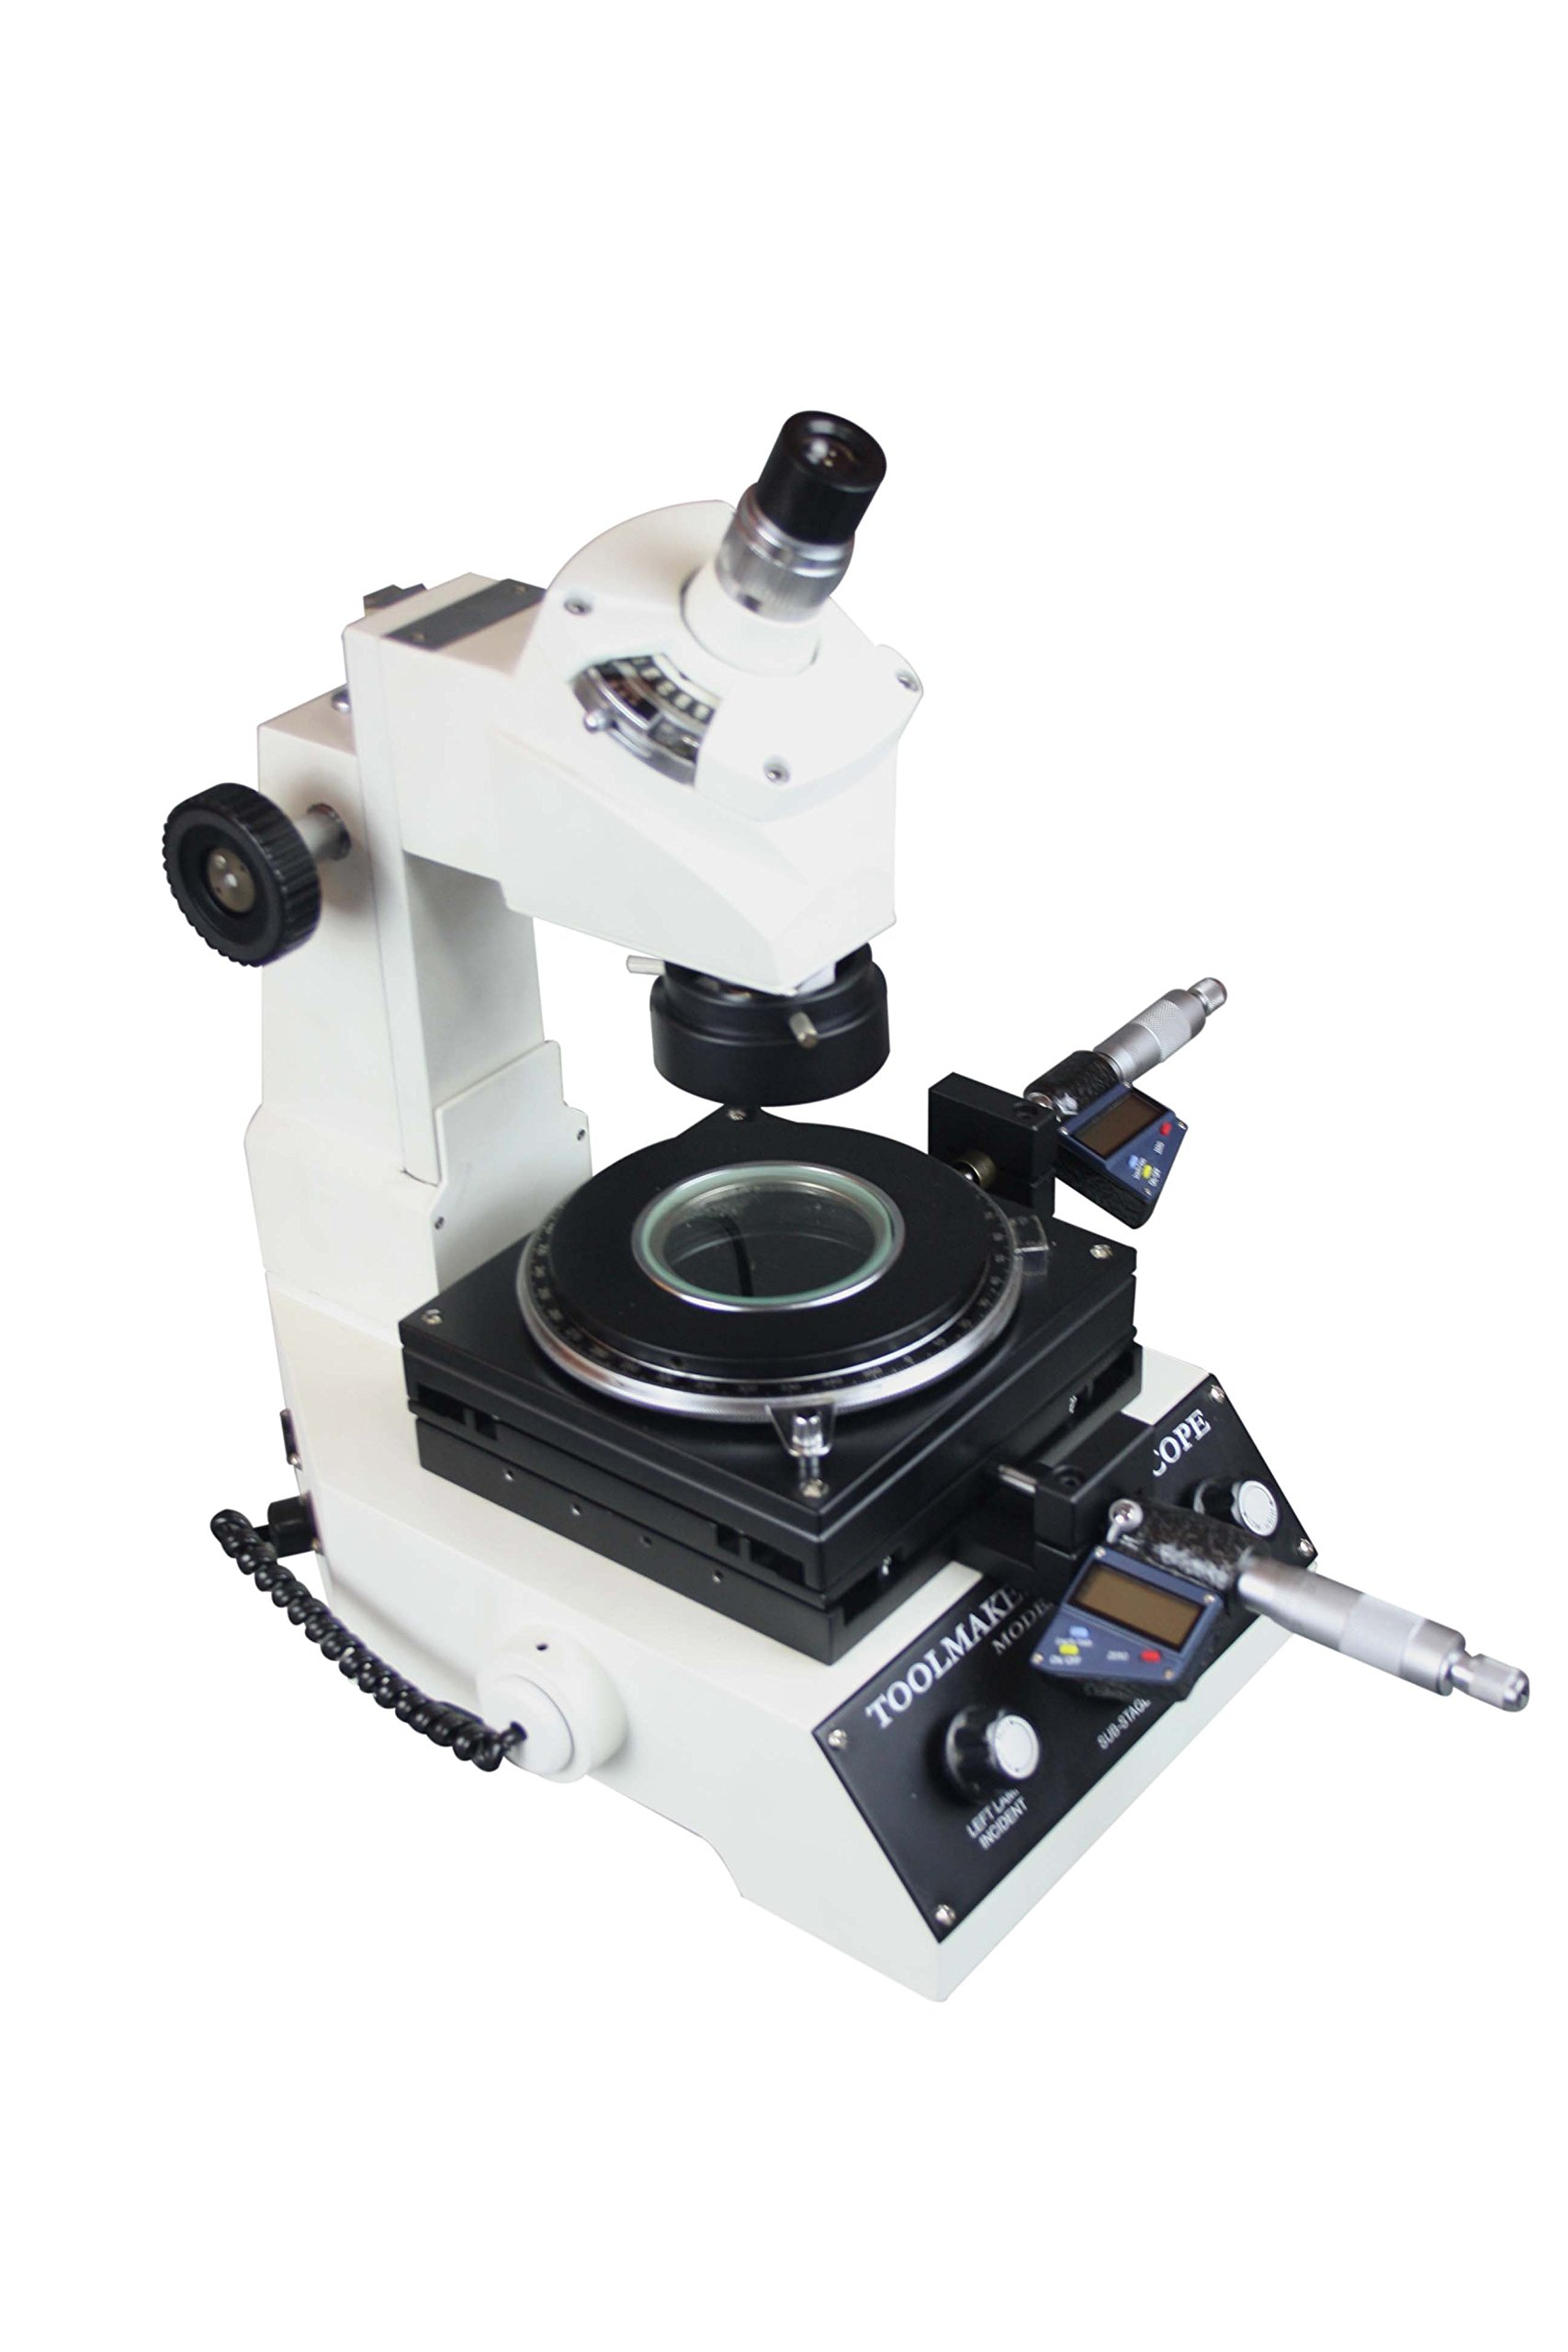 Radical Highly Precise Toolmakers Angle & Linear Industrial Measuring Microscope - Digital Micrometer 1um LED Light by Radical